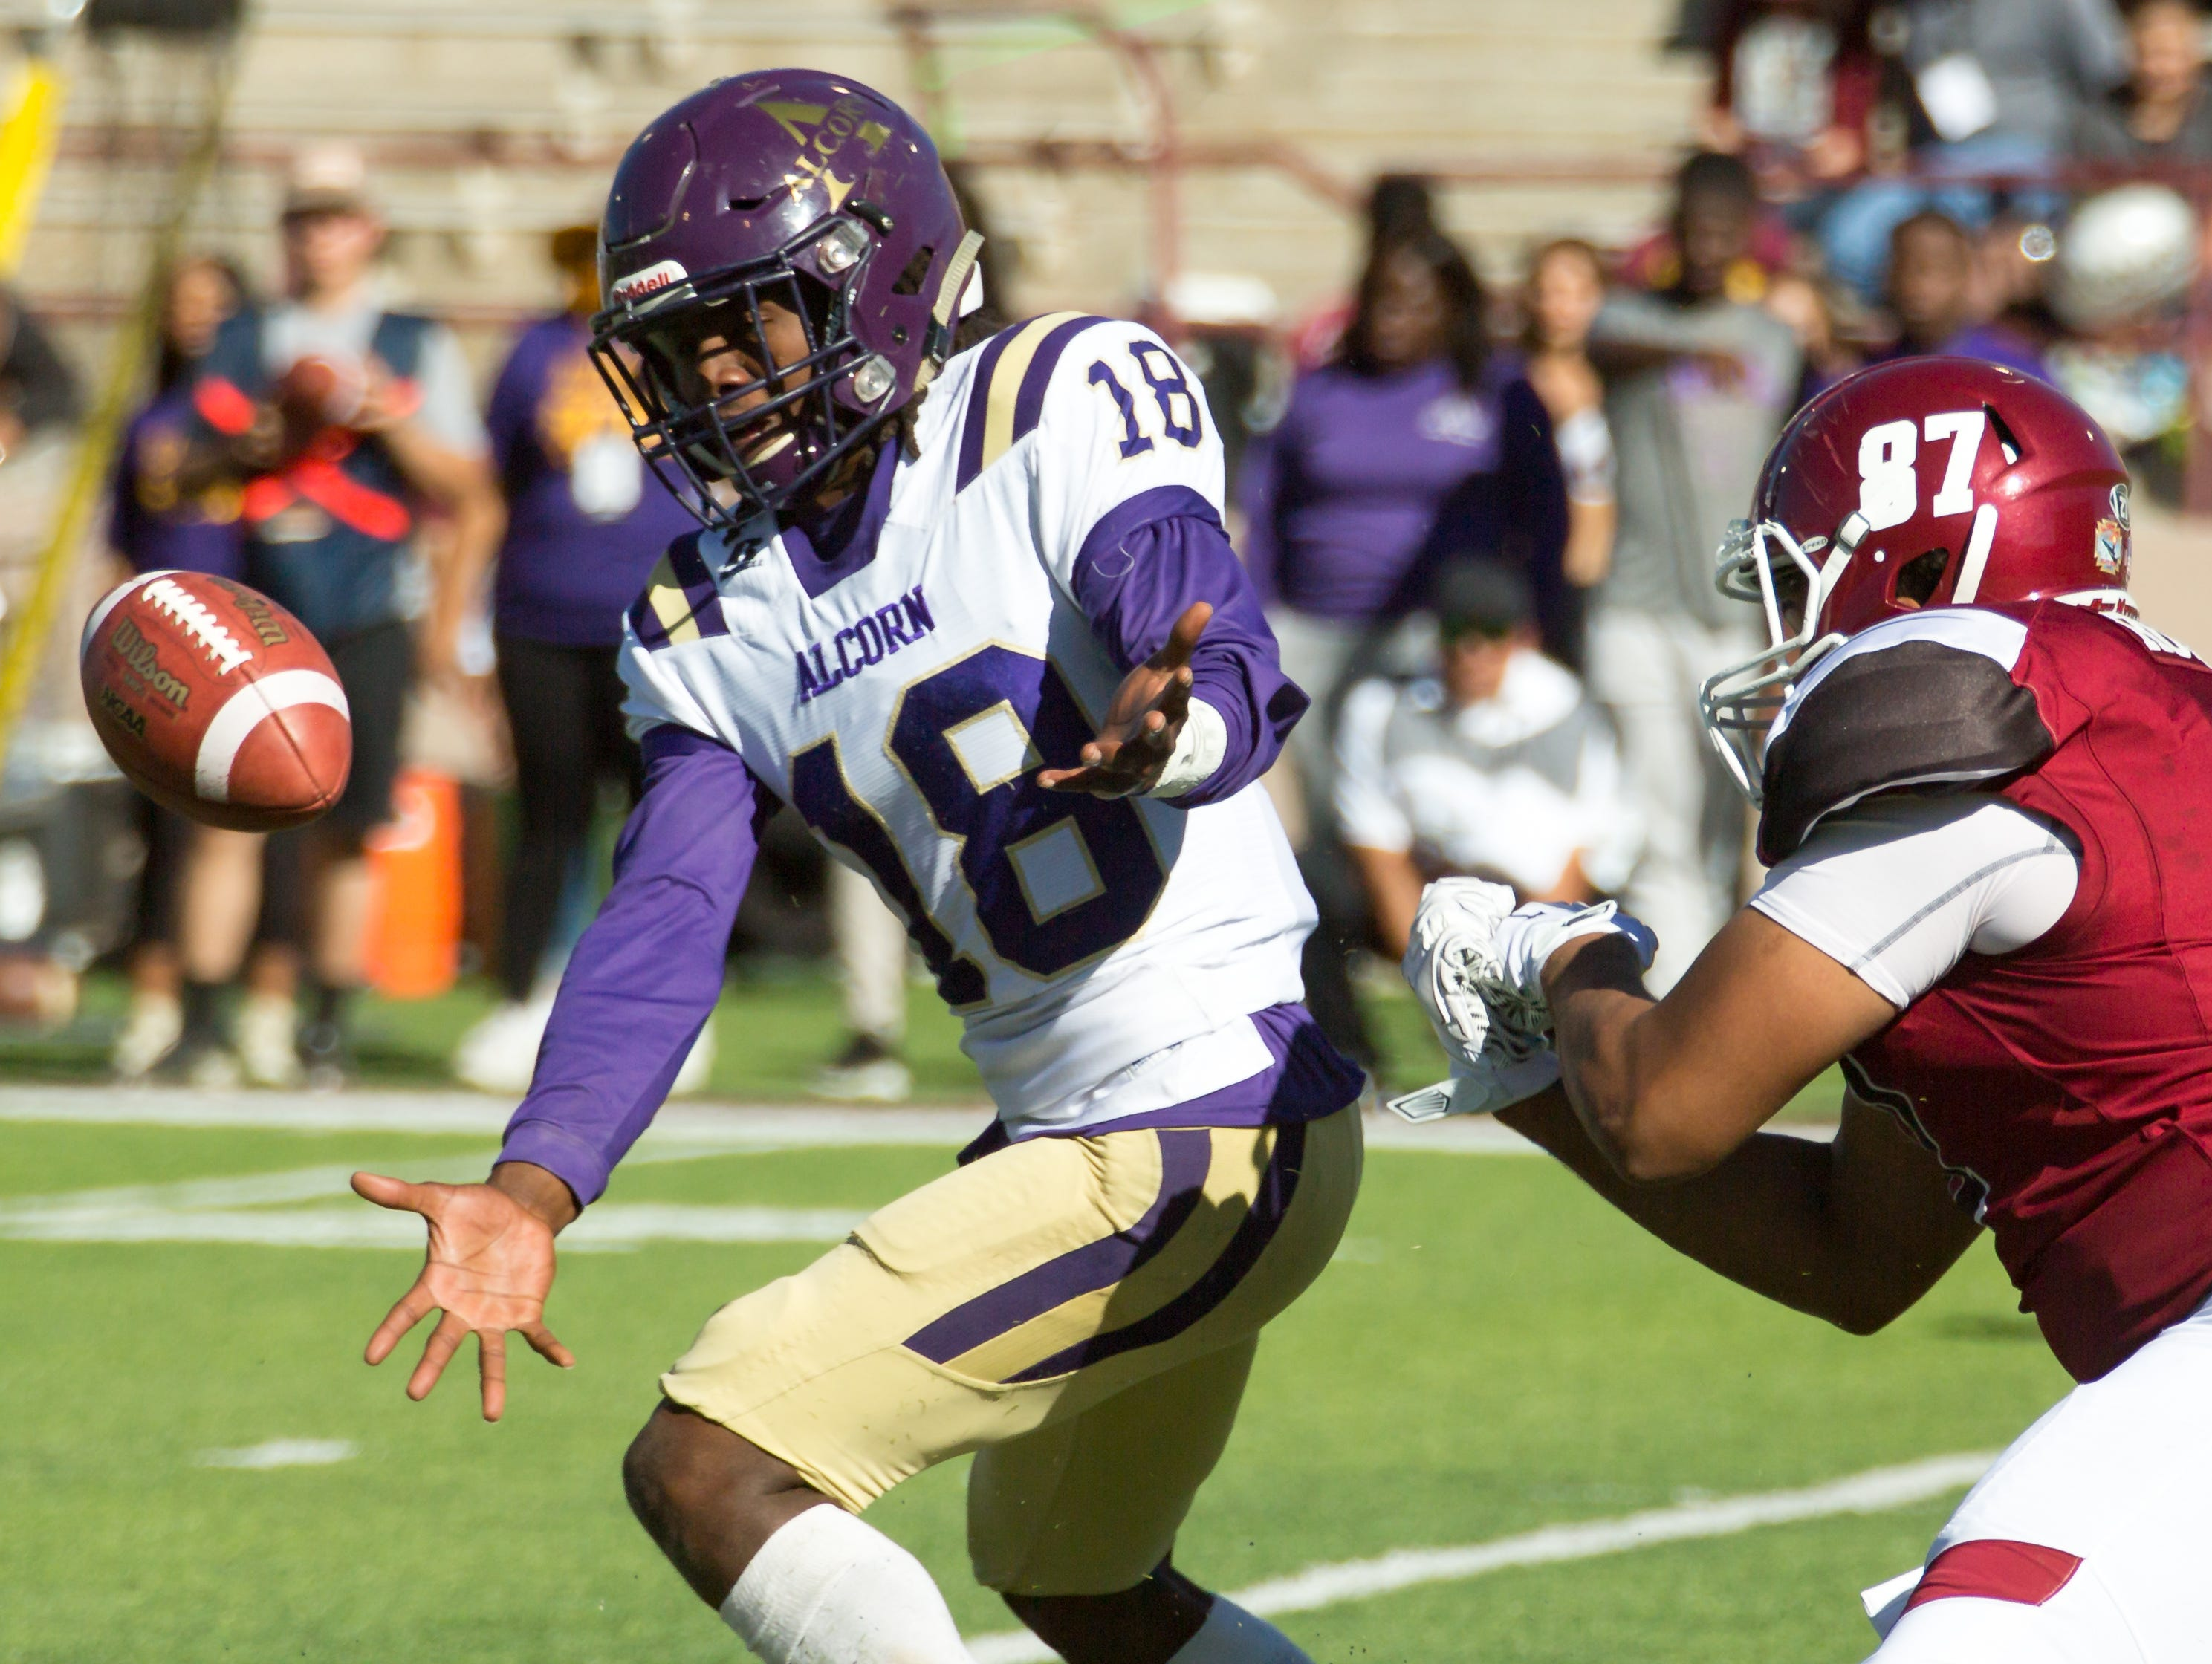 Alcorn State's Leishaun Ealey misses the ball as NMSU's Bryce Roberts is near by on Saturday, Nov. 3, 2018 at Aggie Memorial Stadium.